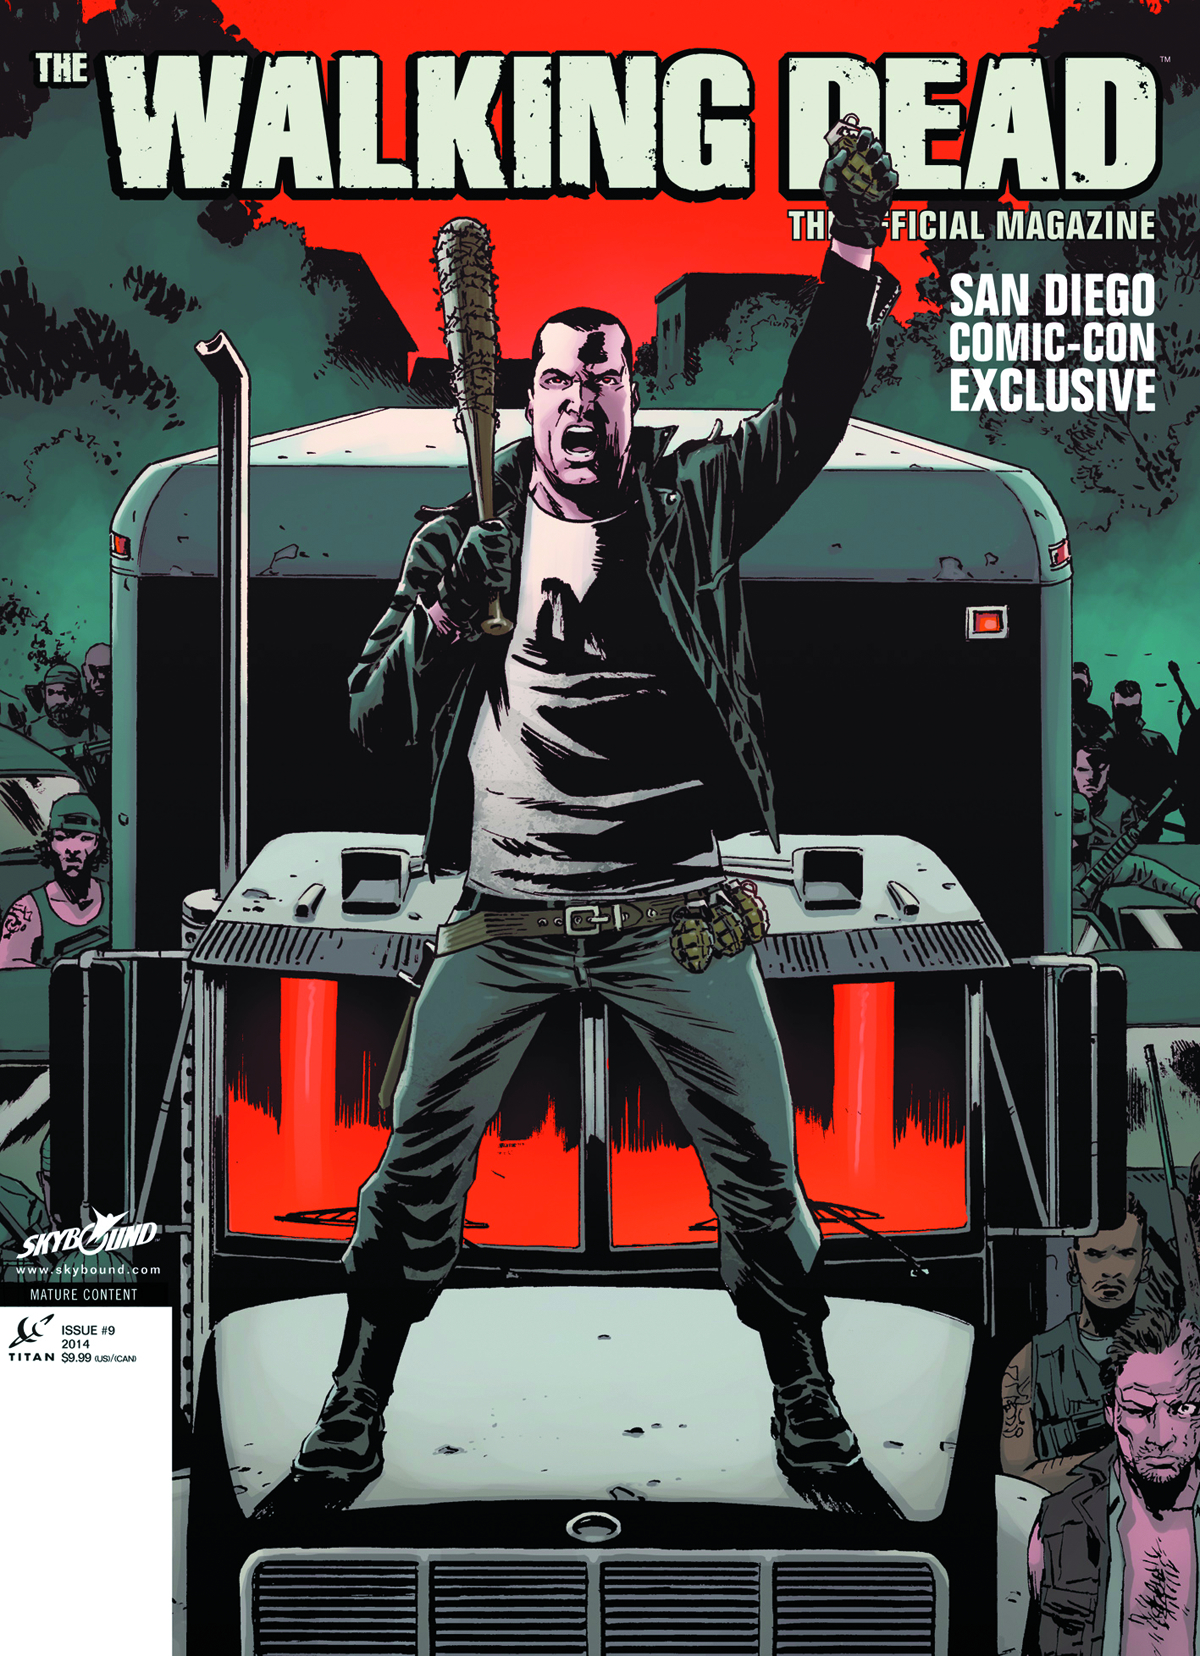 WALKING DEAD MAGAZINE #9 SDCC EXCLUSIVE COVER